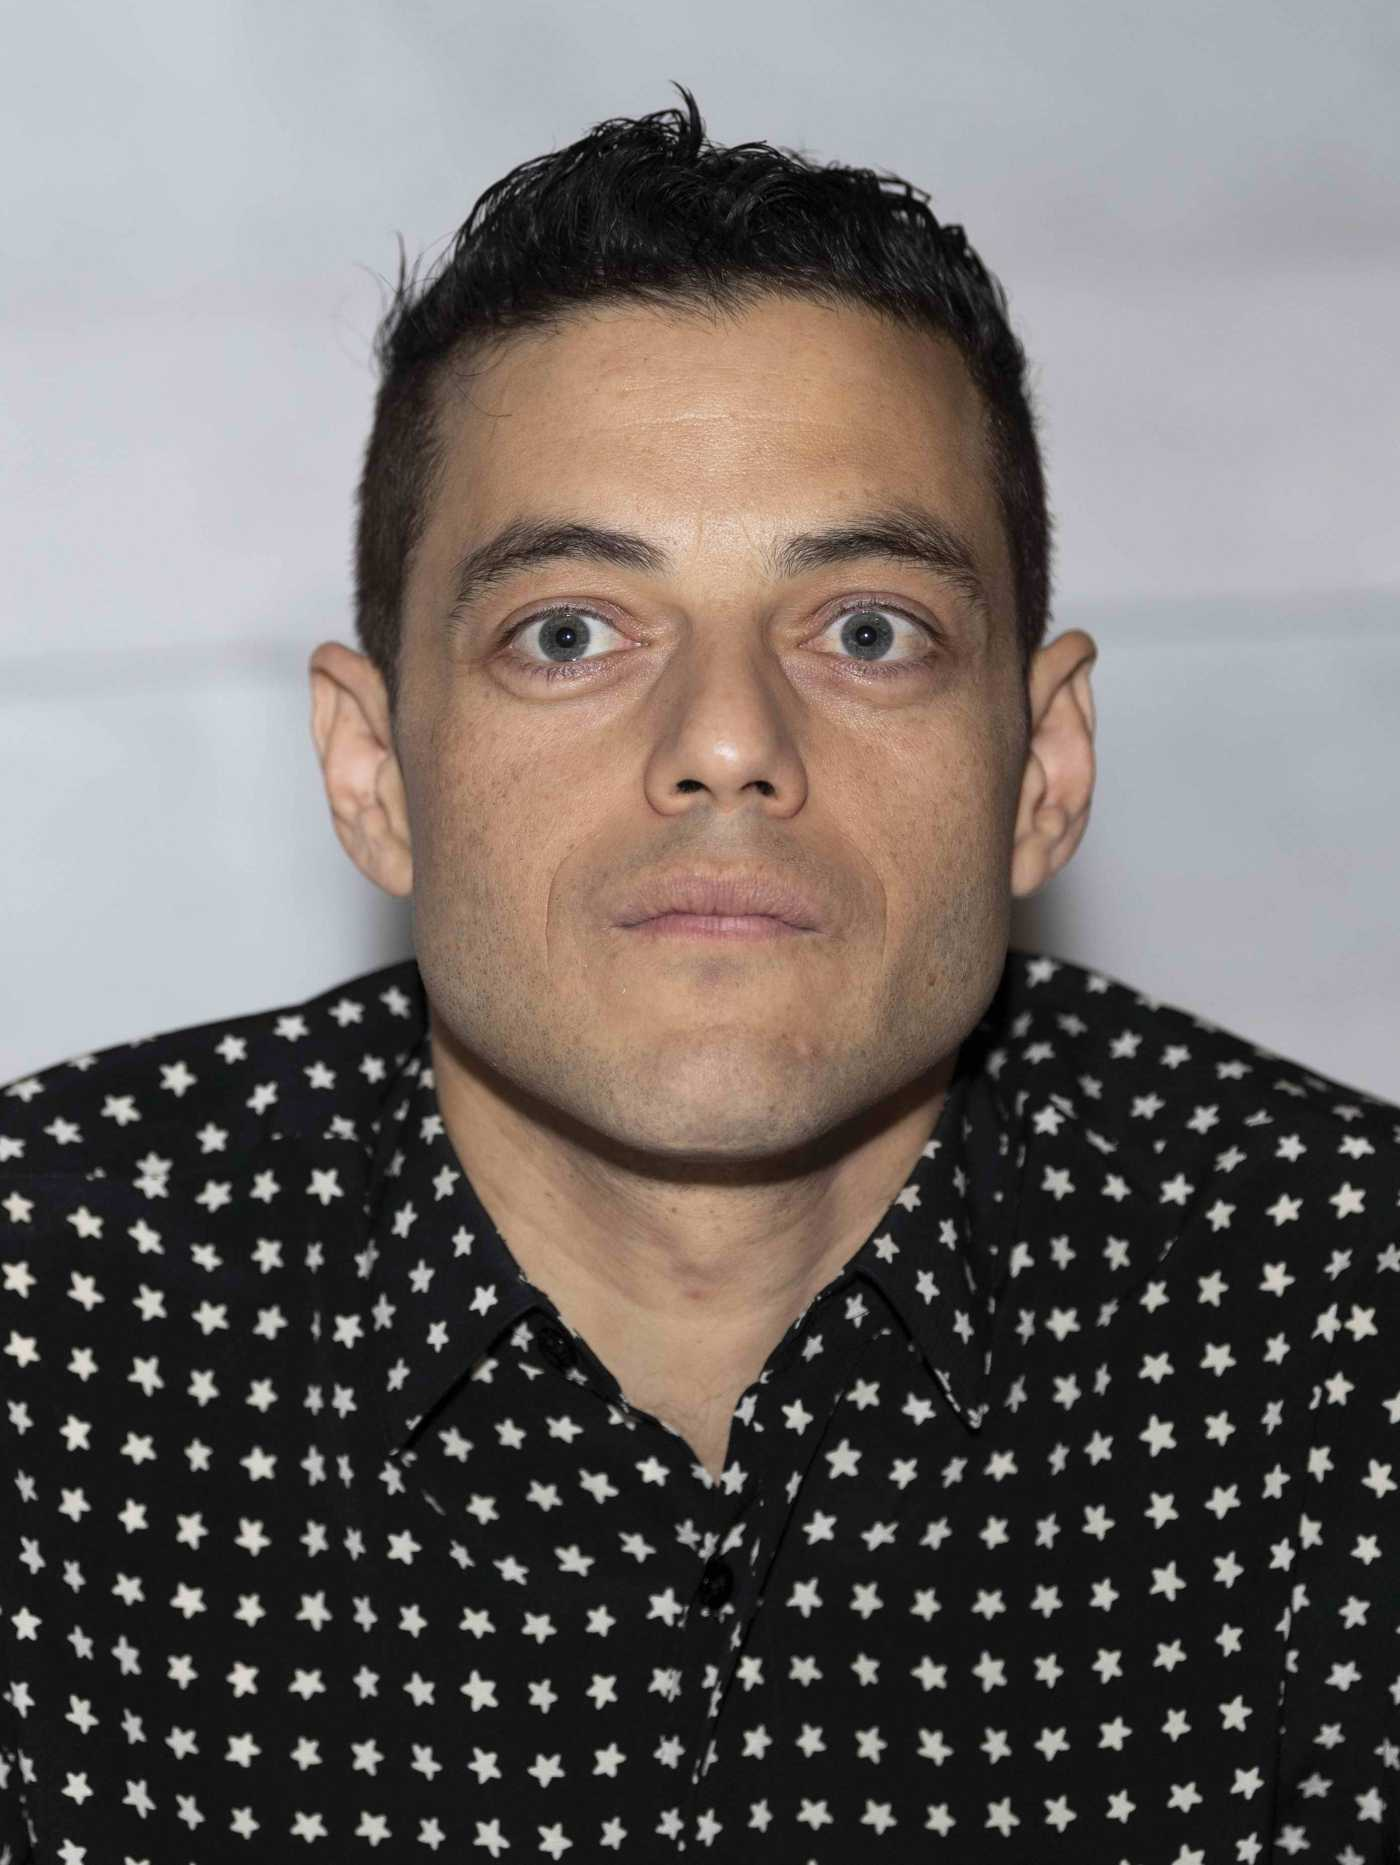 rami-malek-attends-mr-robot-tv-show-photocall-in-new-york-06-17-2019-1.jpg